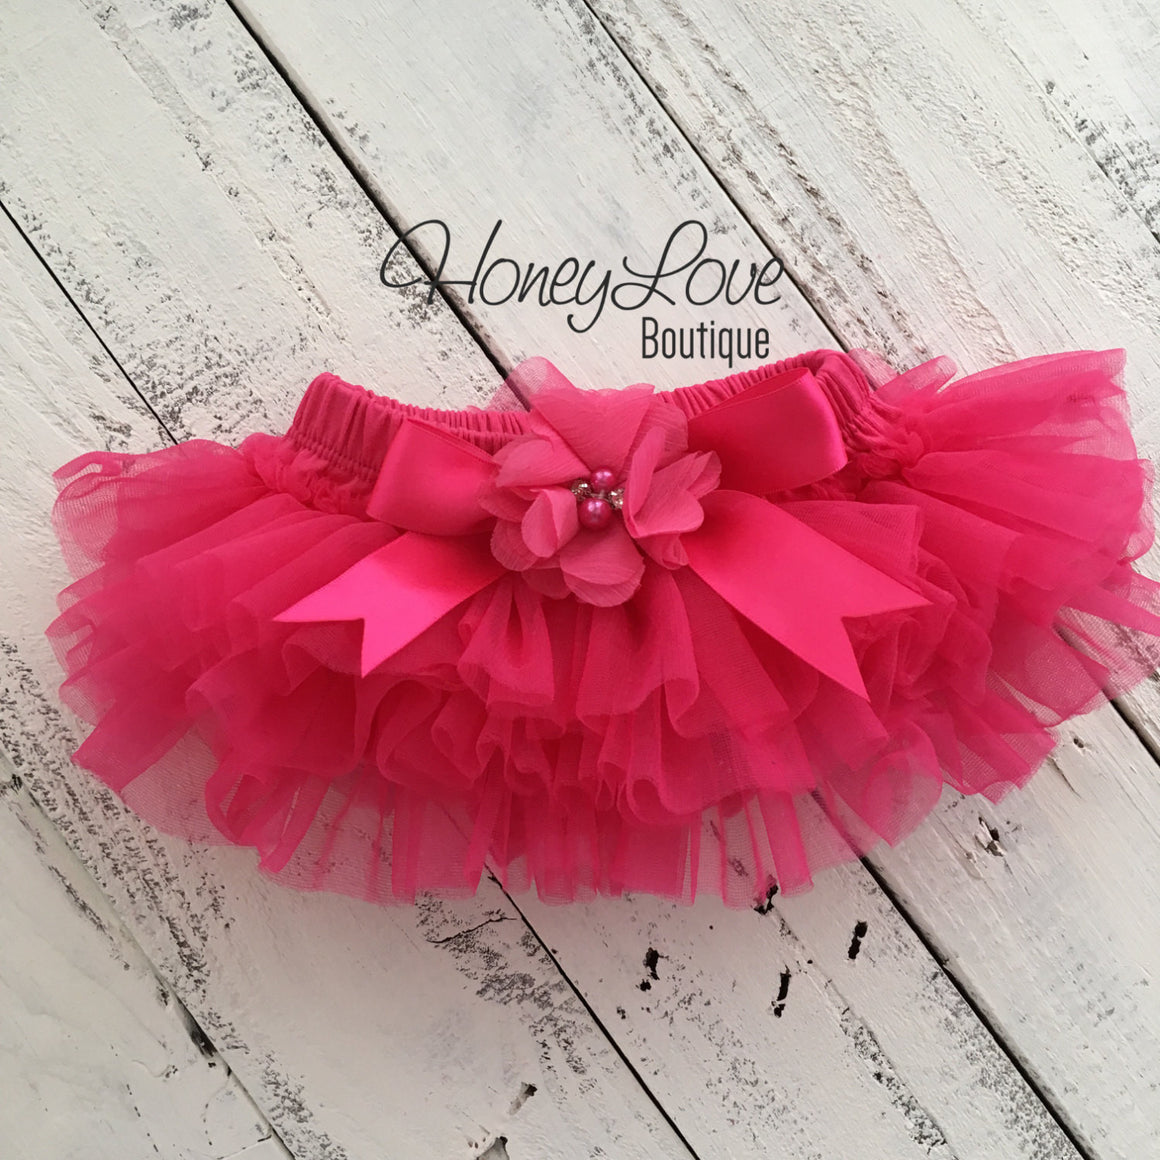 Watermelon/Hot Pink tutu skirt bloomers - embellished bloomer